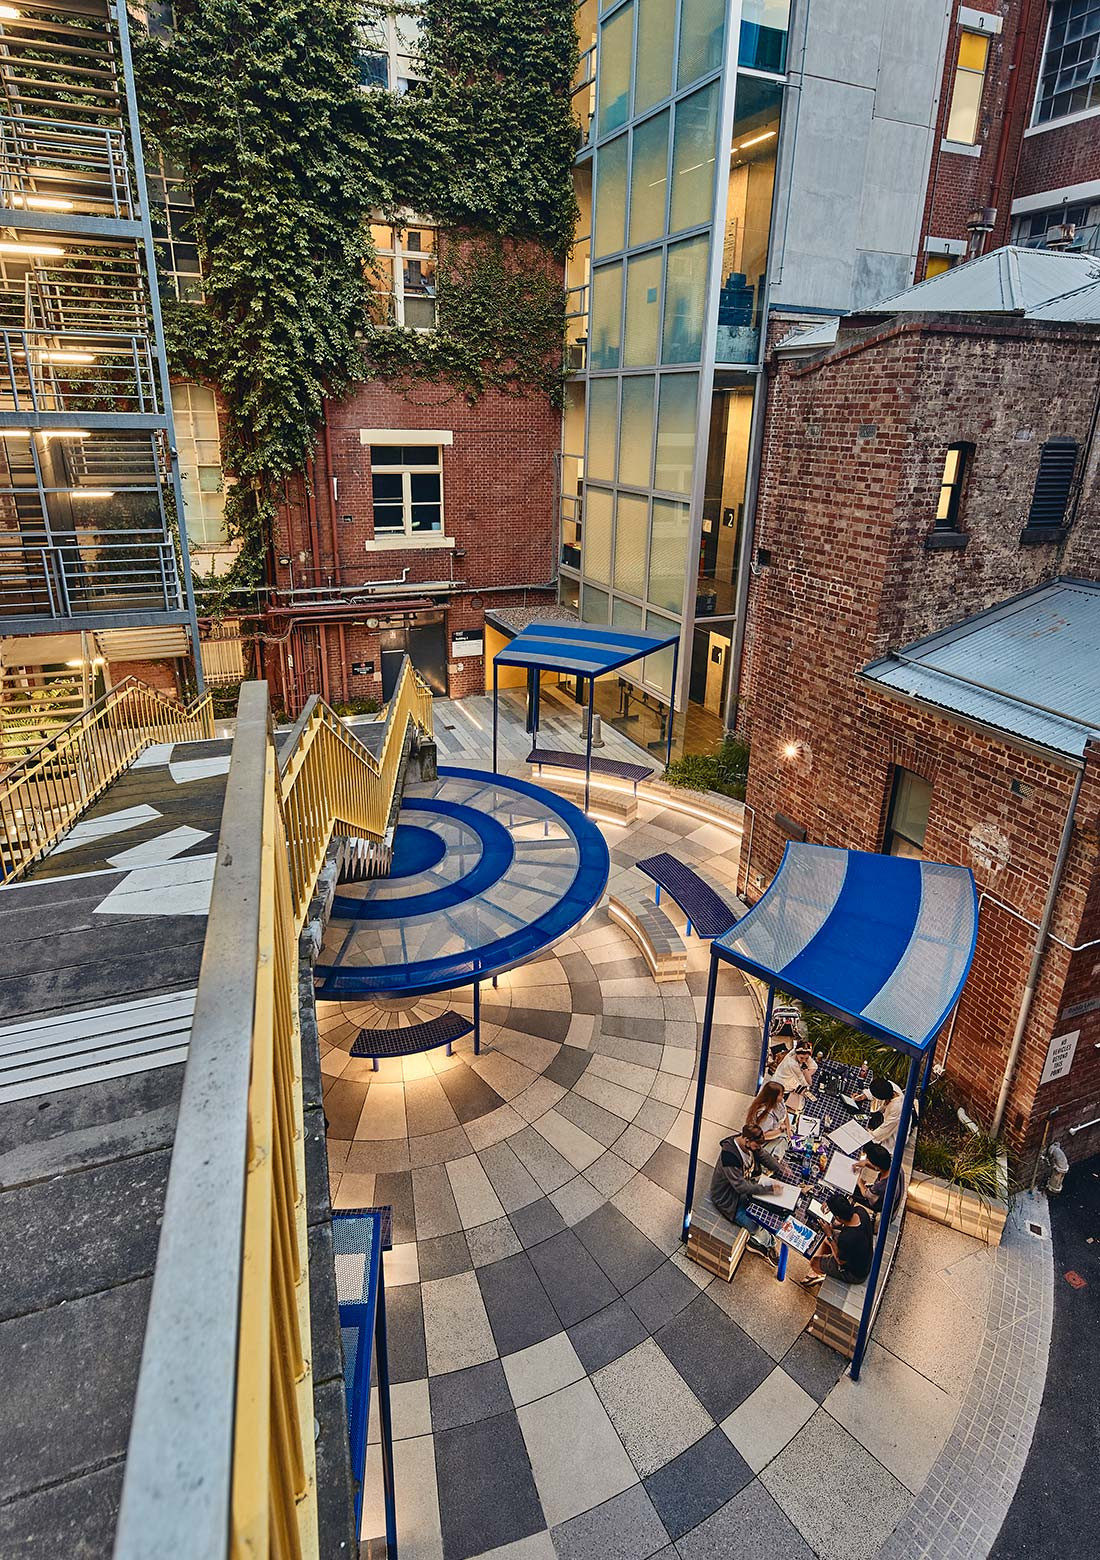 RMIT New City Laneways in Melbourne, by Sibling Architecture, bring meetings, informal class time, and collaborative opportunities into the university's interconnecting laneways. Photo: Peter Bennetts